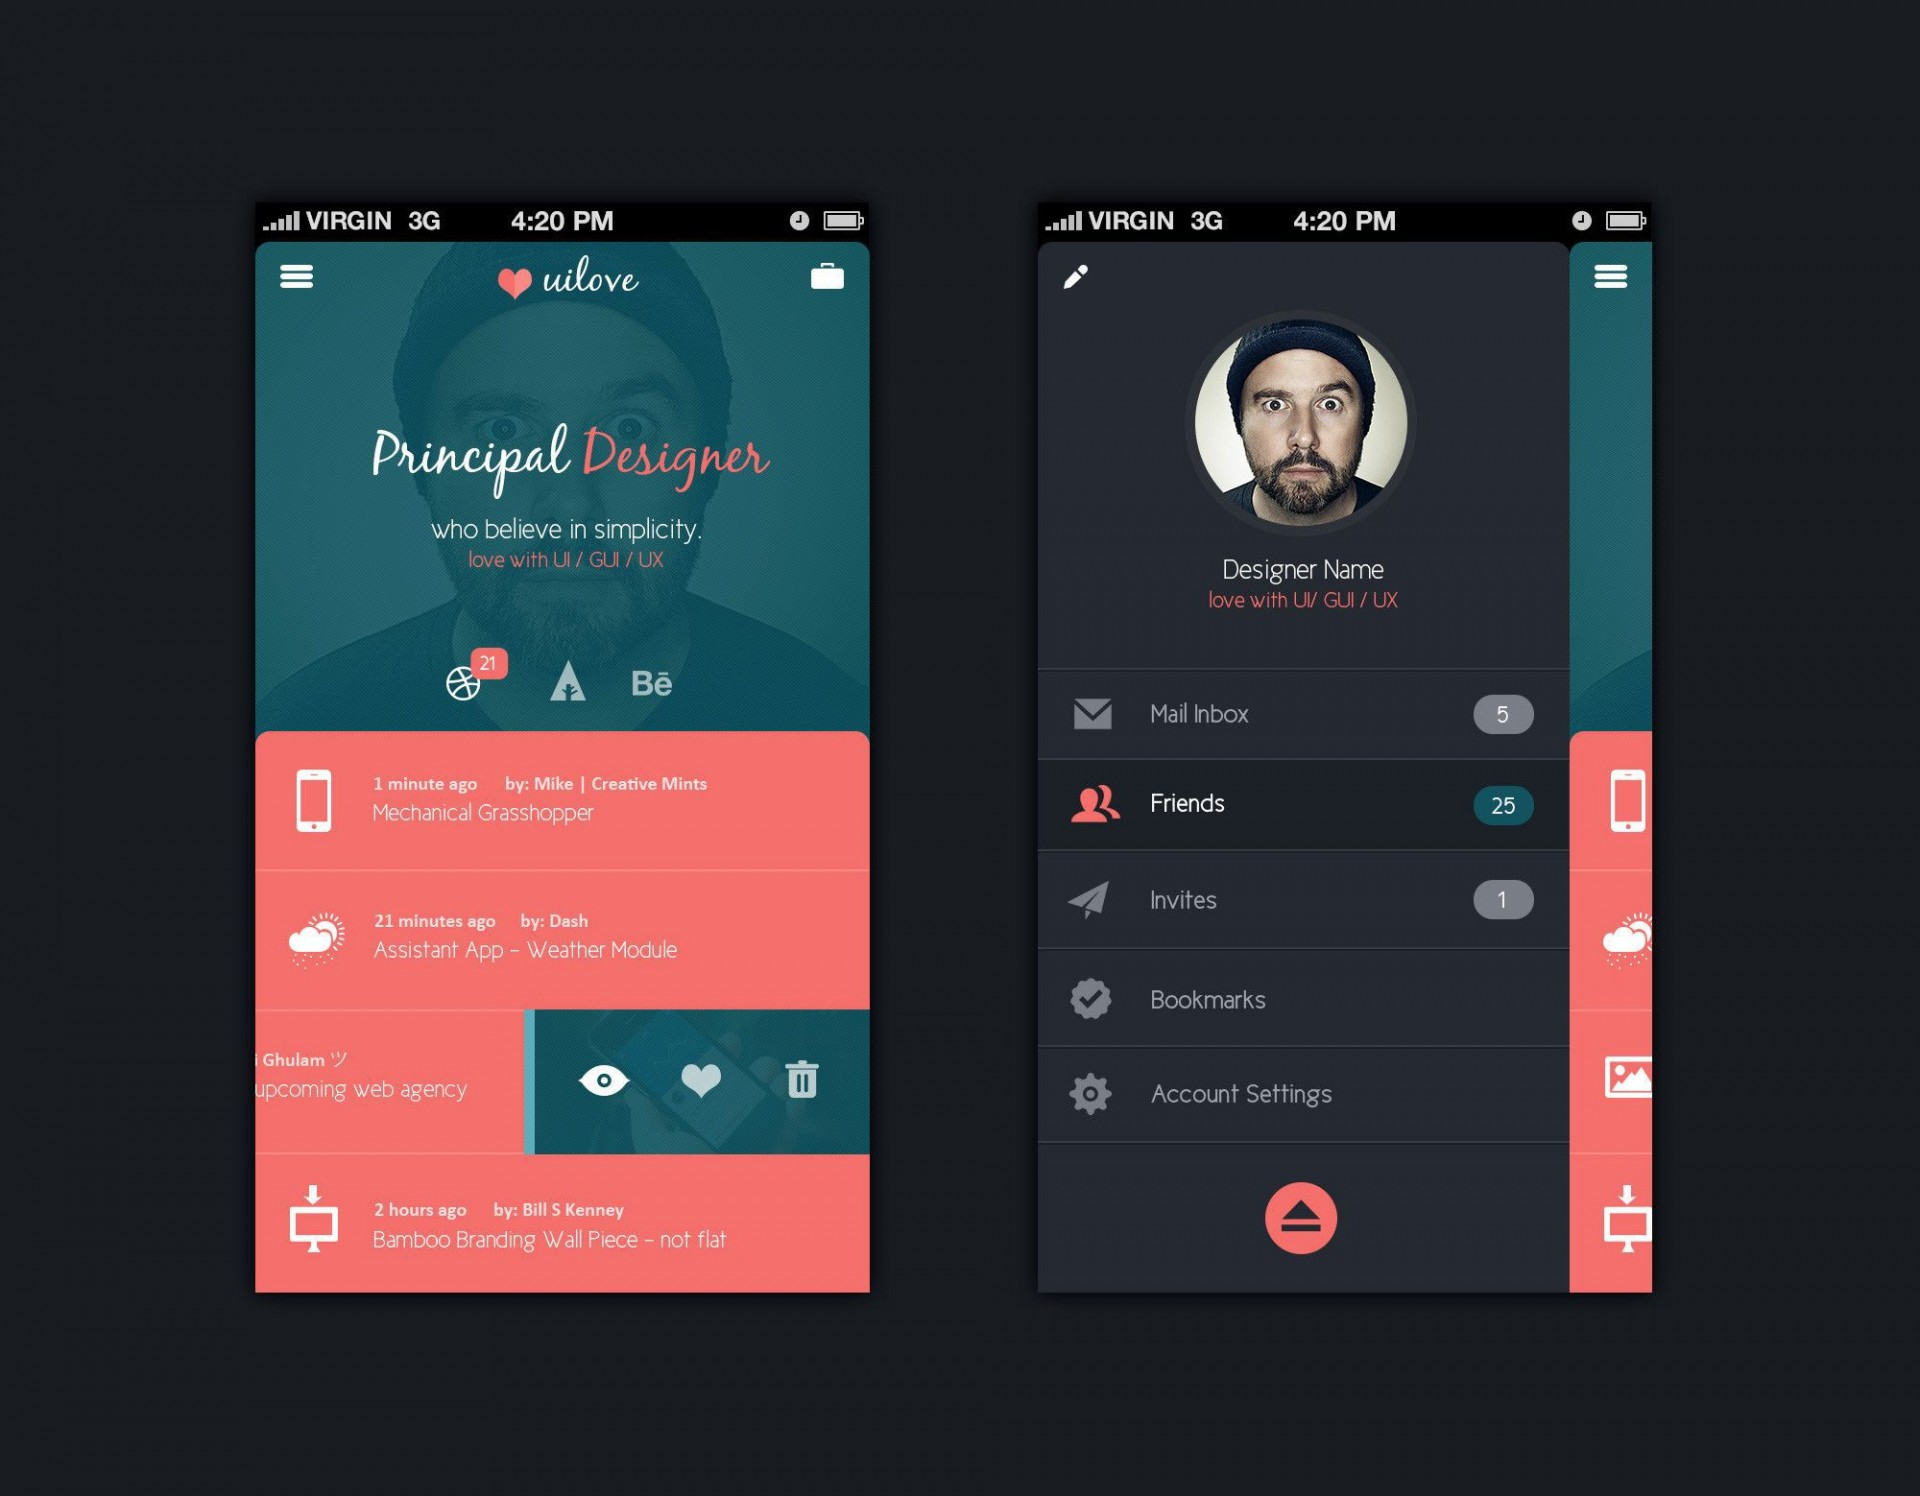 003 Beautiful Mobile App Design Template Highest Clarity  Size Free Download Ui Psd1920